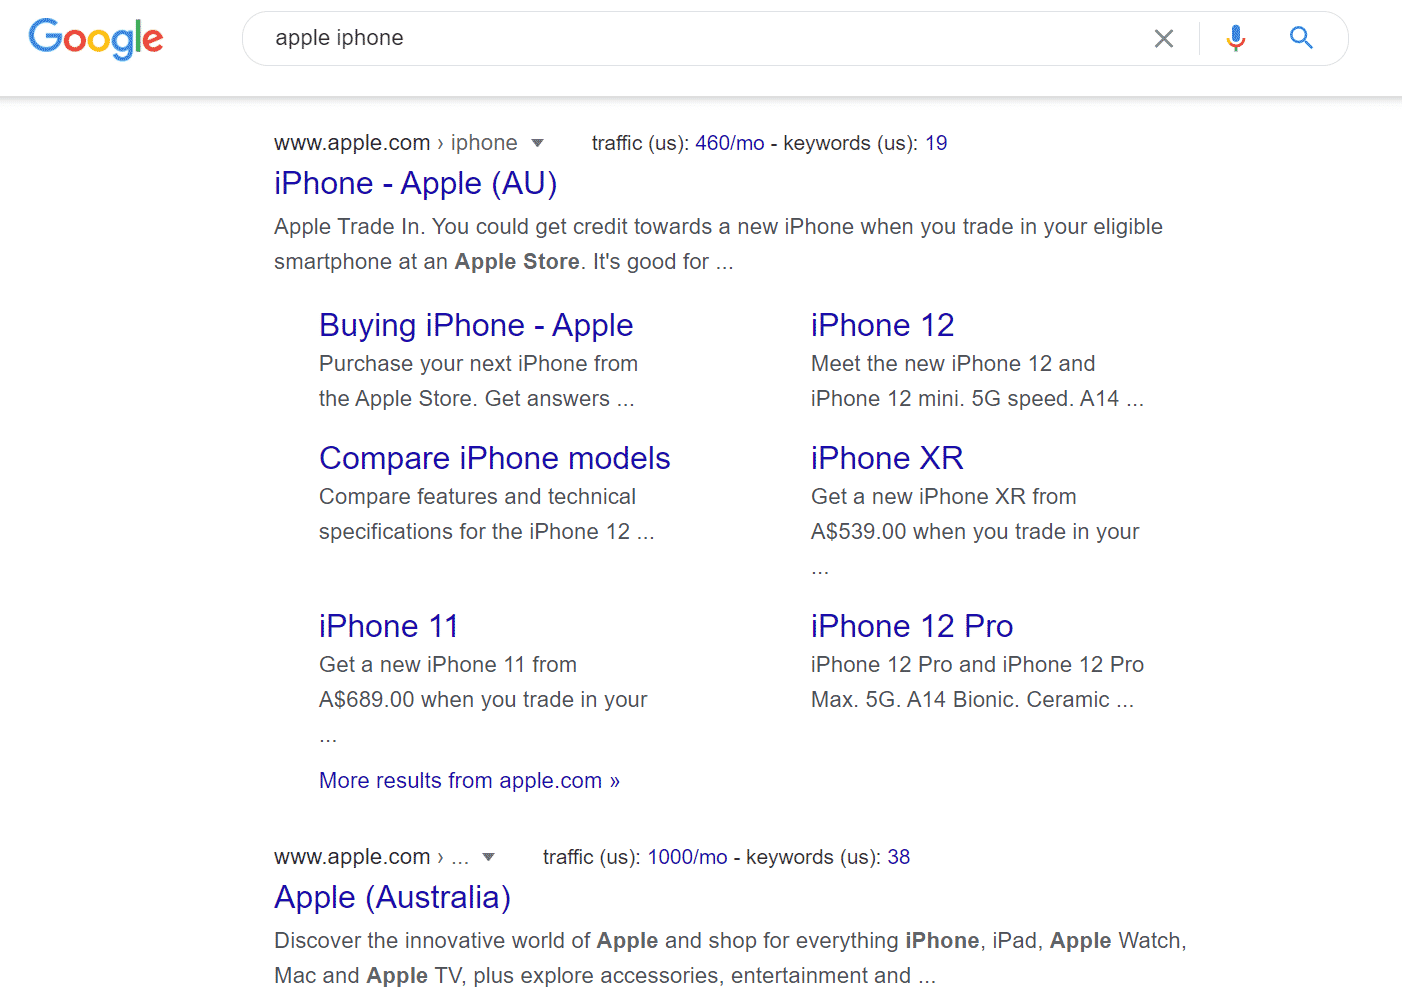 Google SERP for apple iphone